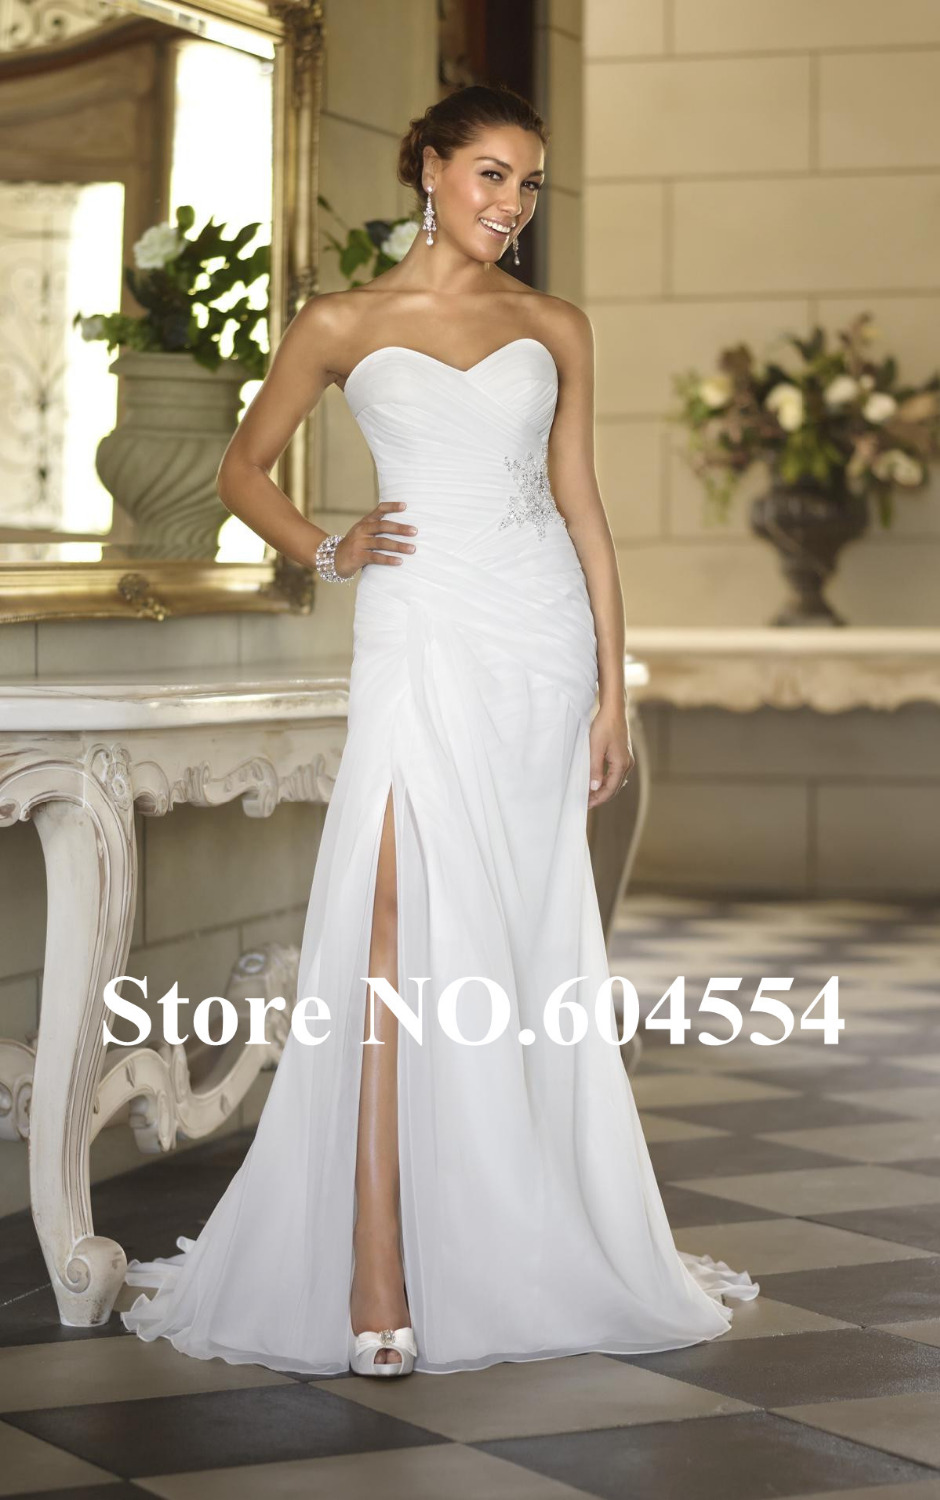 Ideas Size 22 Wedding Dresses compare prices on wedding dresses size 22 online shoppingbuy low in stock vestido de casamento us 422 whiteivory chiffon applique beading